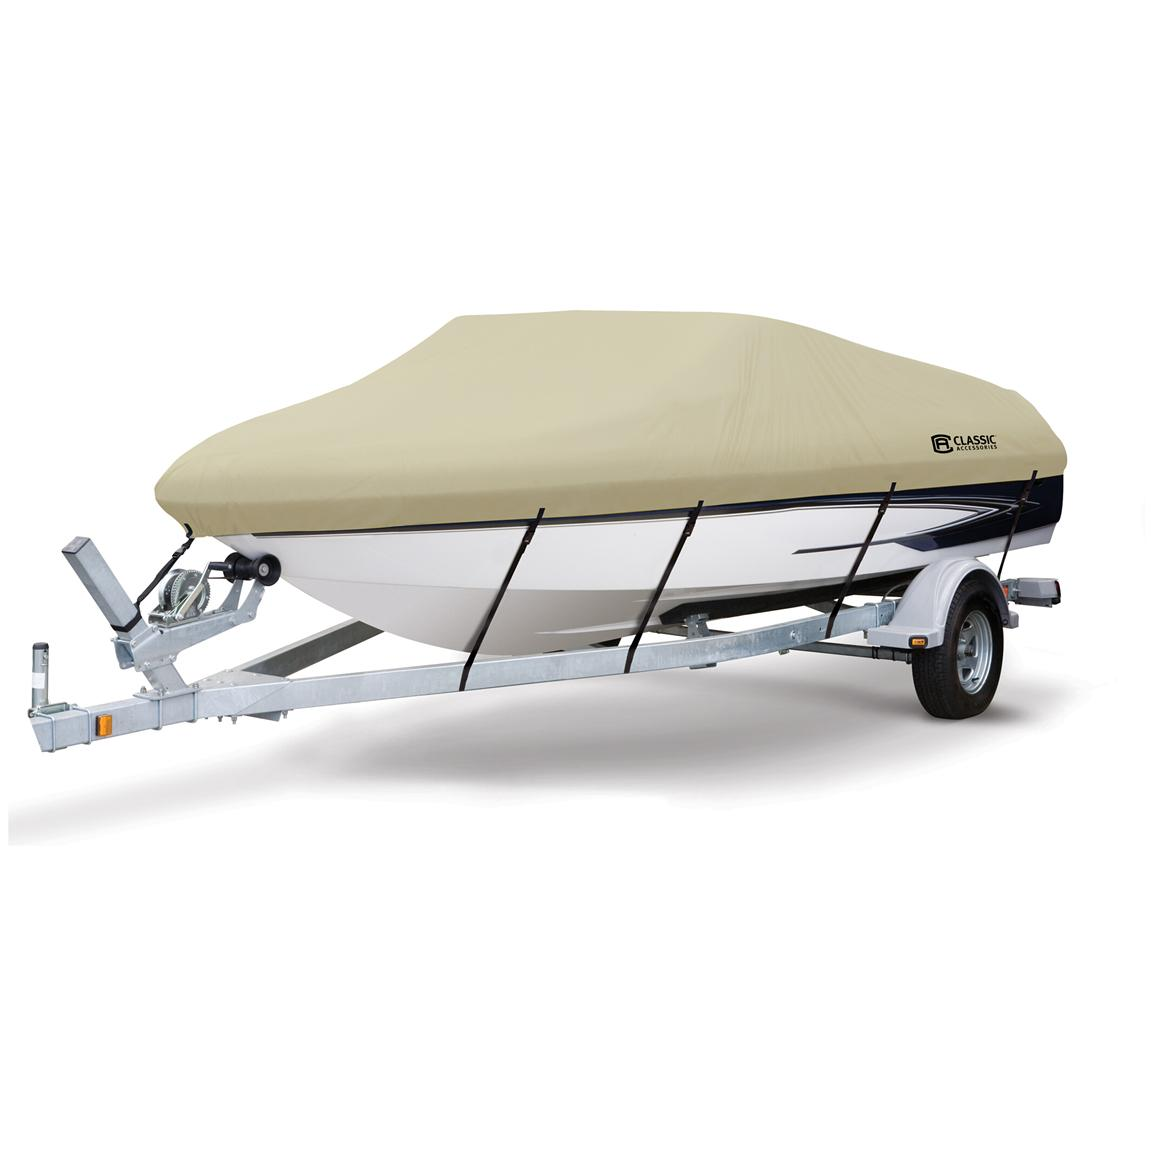 Classic Accessories® Dryguard™ Waterproof Boat Cover